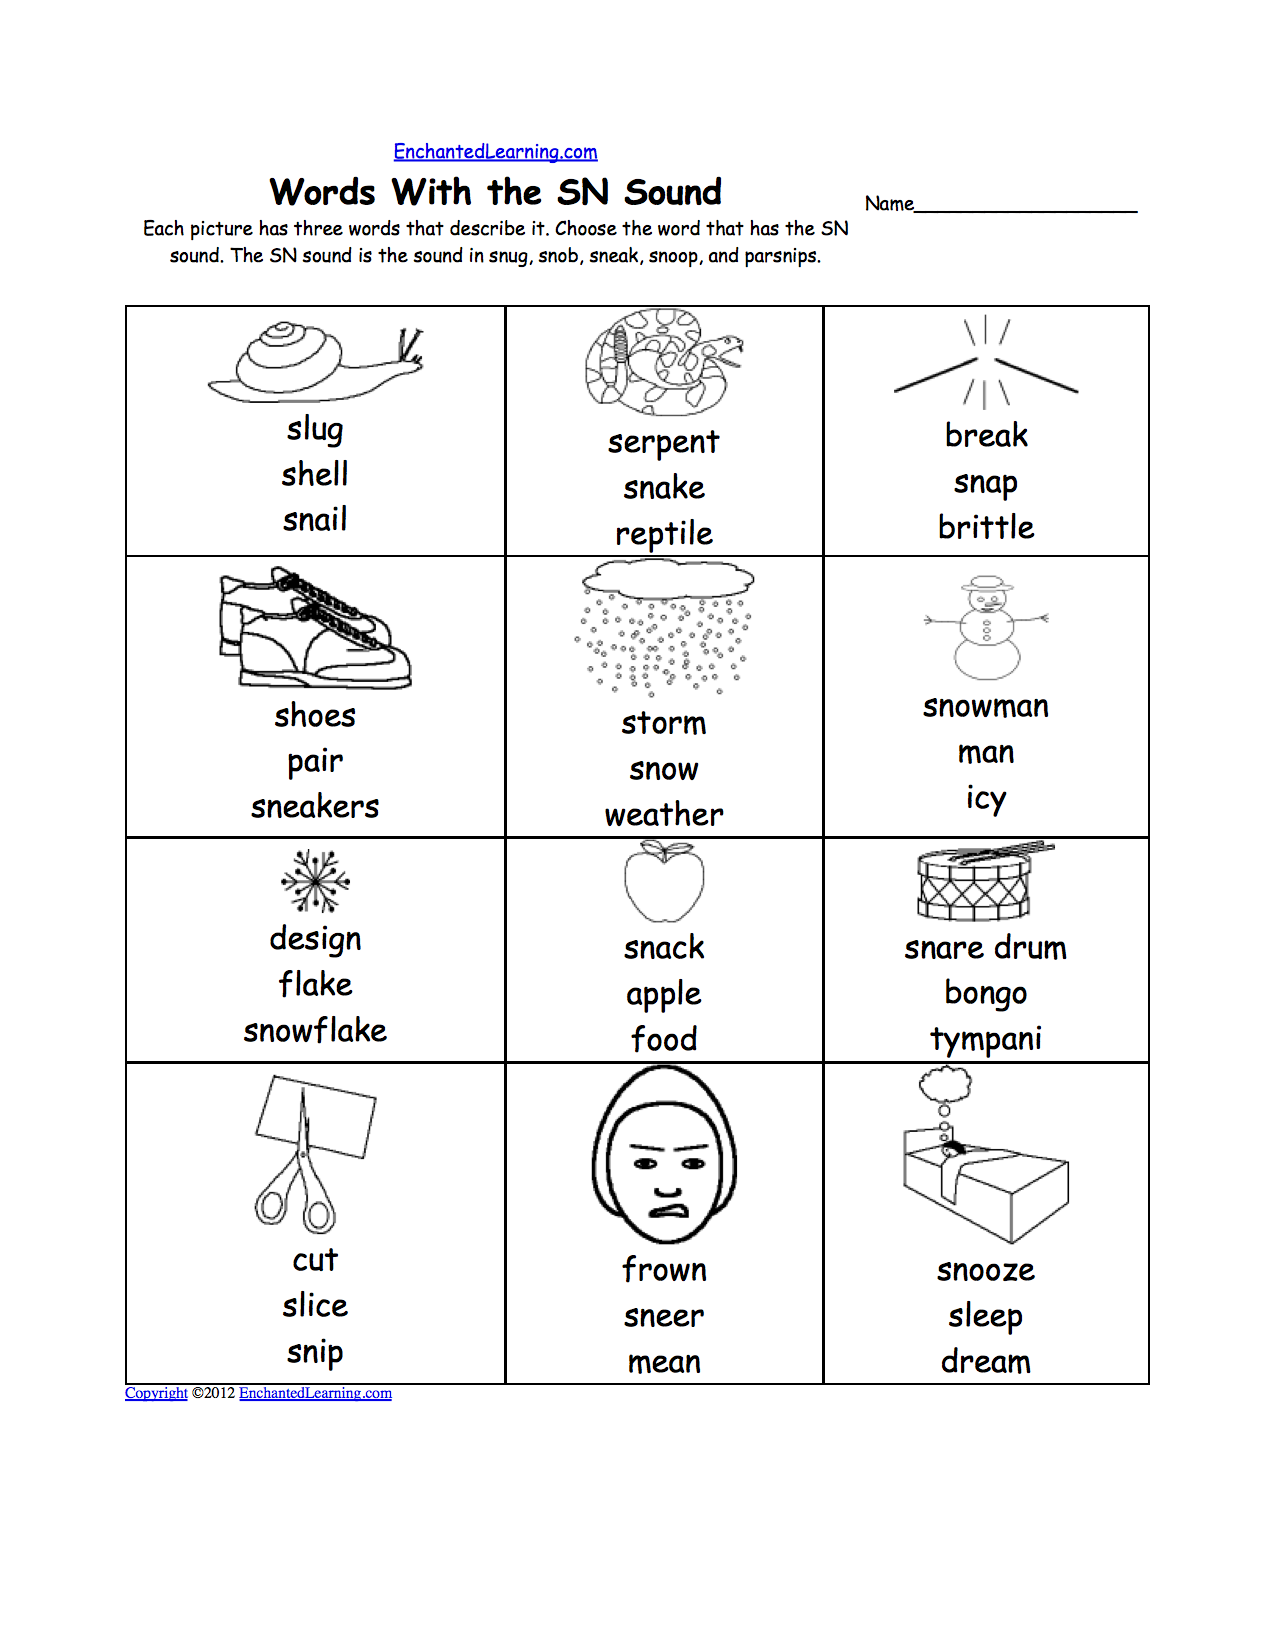 worksheet Phonics Worksheets For Kindergarten phonics worksheets multiple choice to print enchantedlearning com